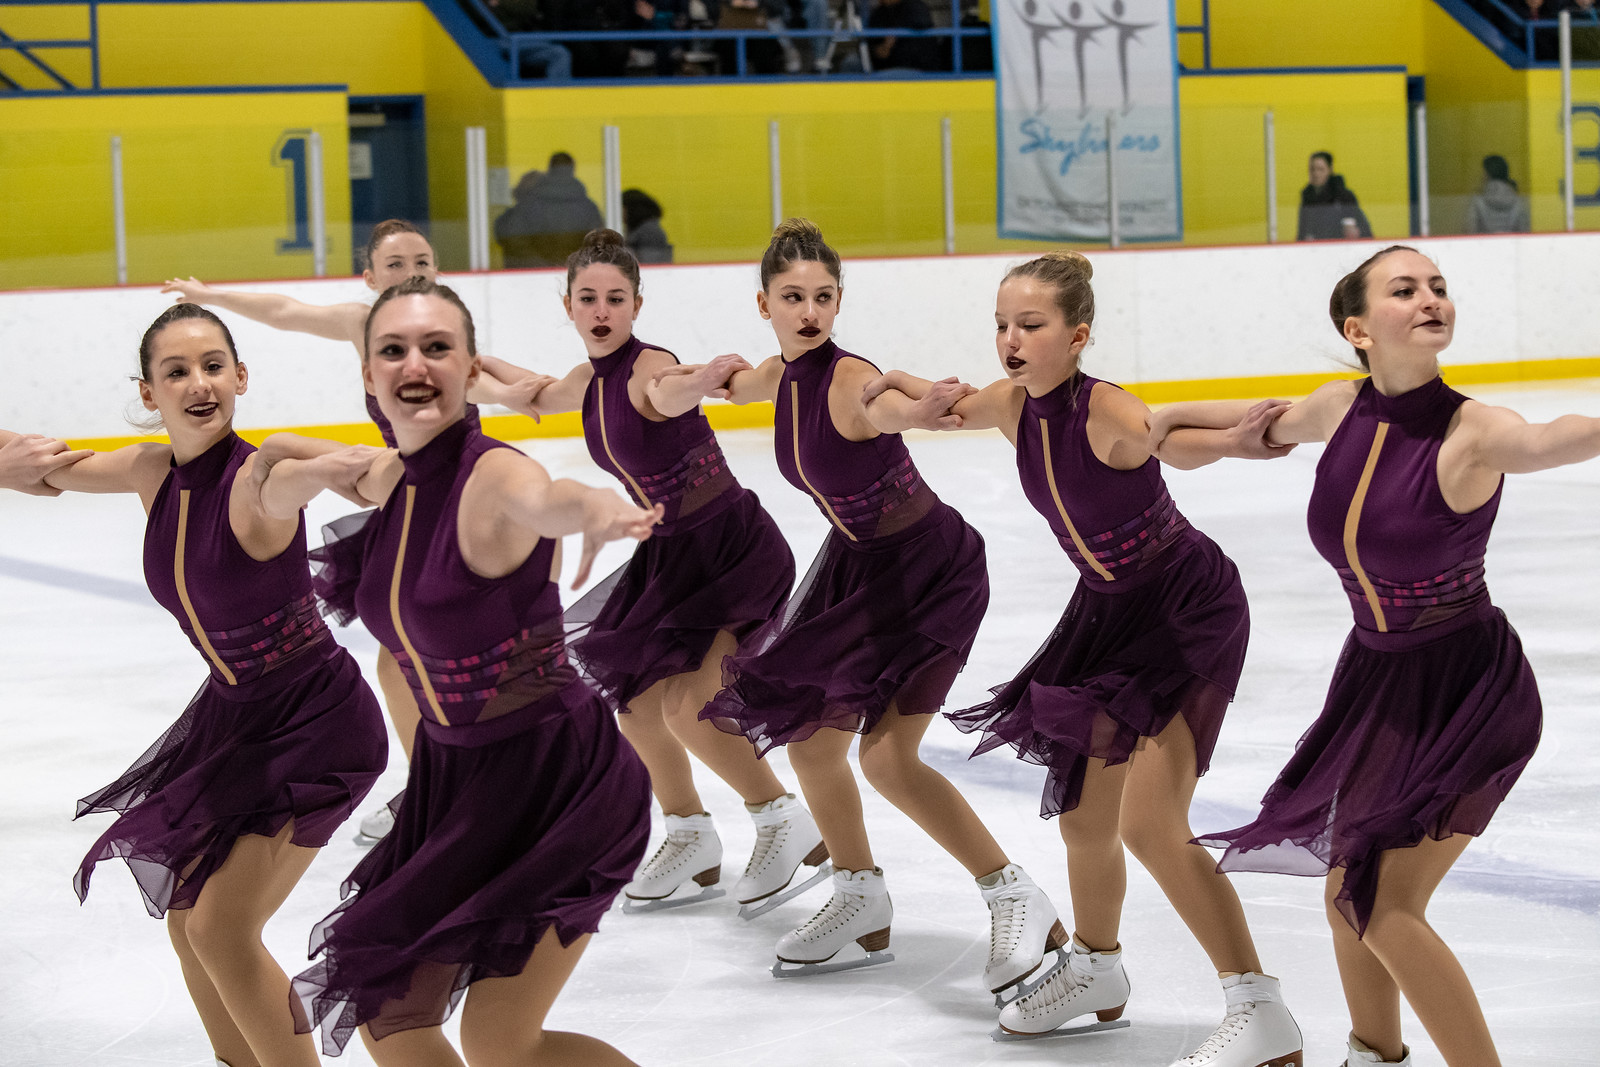 The 2018-19 Central Park Ice intermediate line won silver at the 2018 Essex Synchro Classic and 2018 Terry Conners Synchro Open, and placed ninth at the 2019 Colonial Classic.